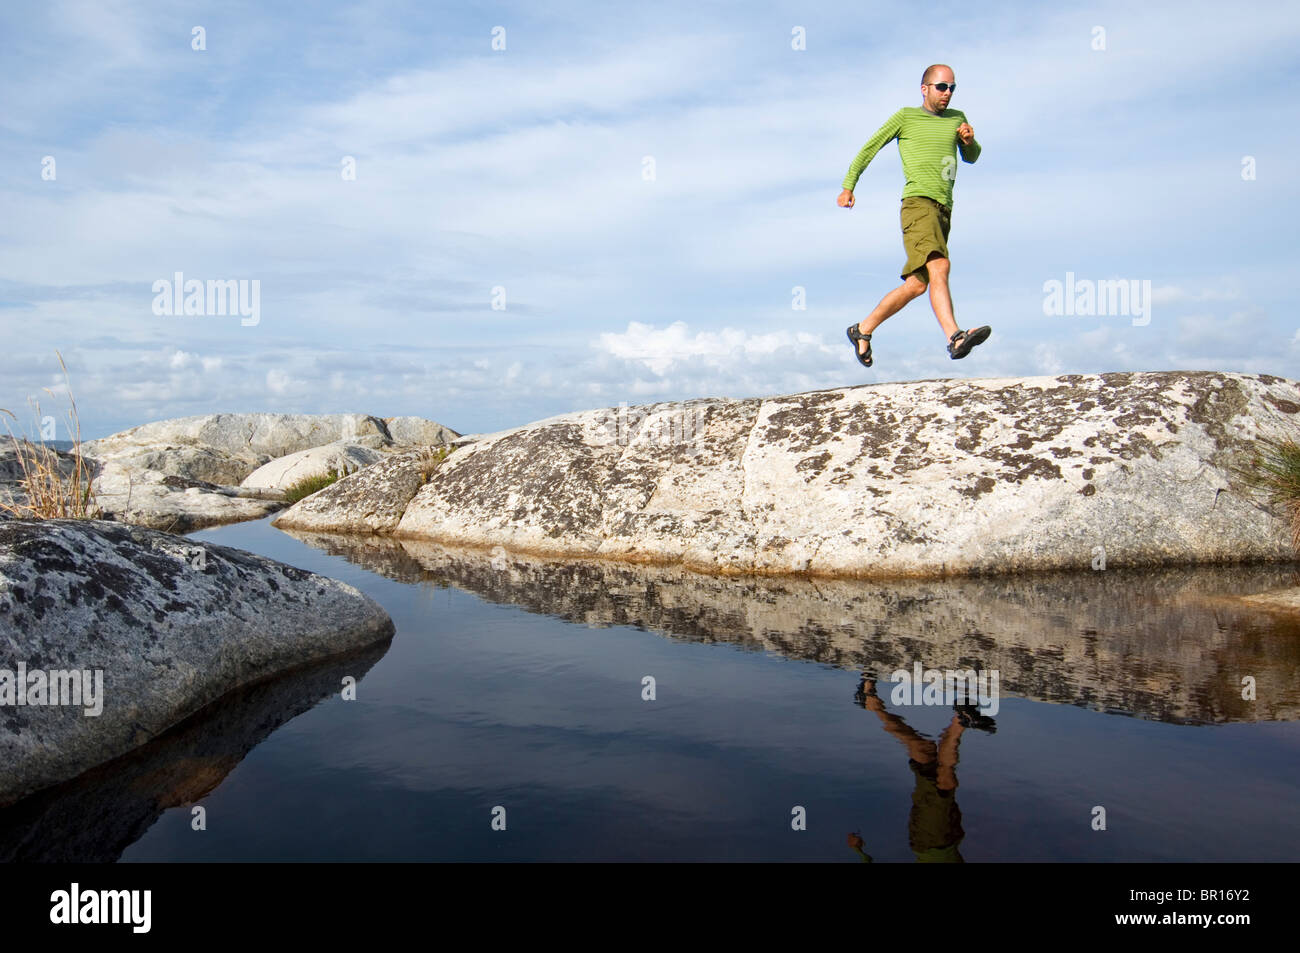 A man running along a rocky ridge above a small pond on one of the hundereds of islands in the archipelago near - Stock Image